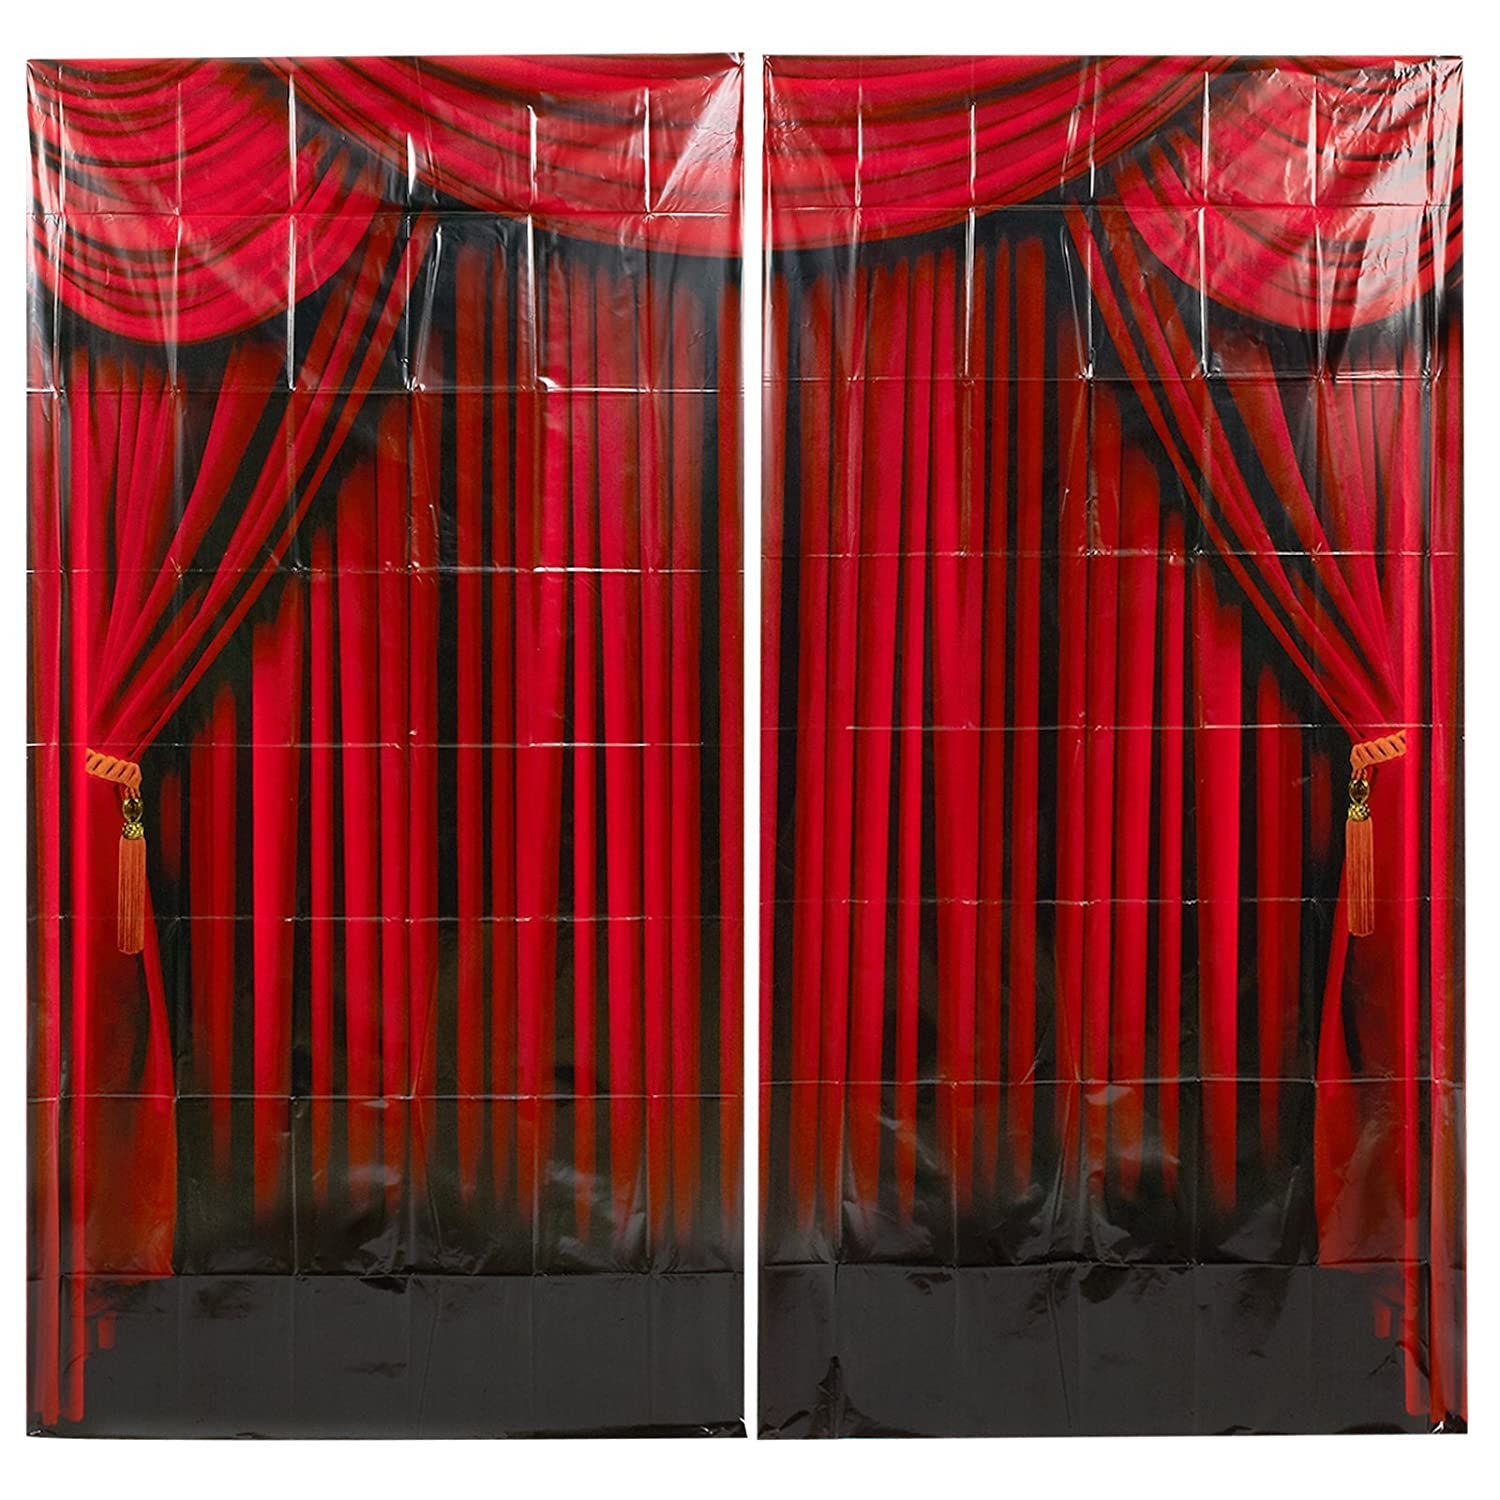 Plastic Red Curtain Backdrop Banner (2 pc ) Everready First Aid FNEIN-3/2329